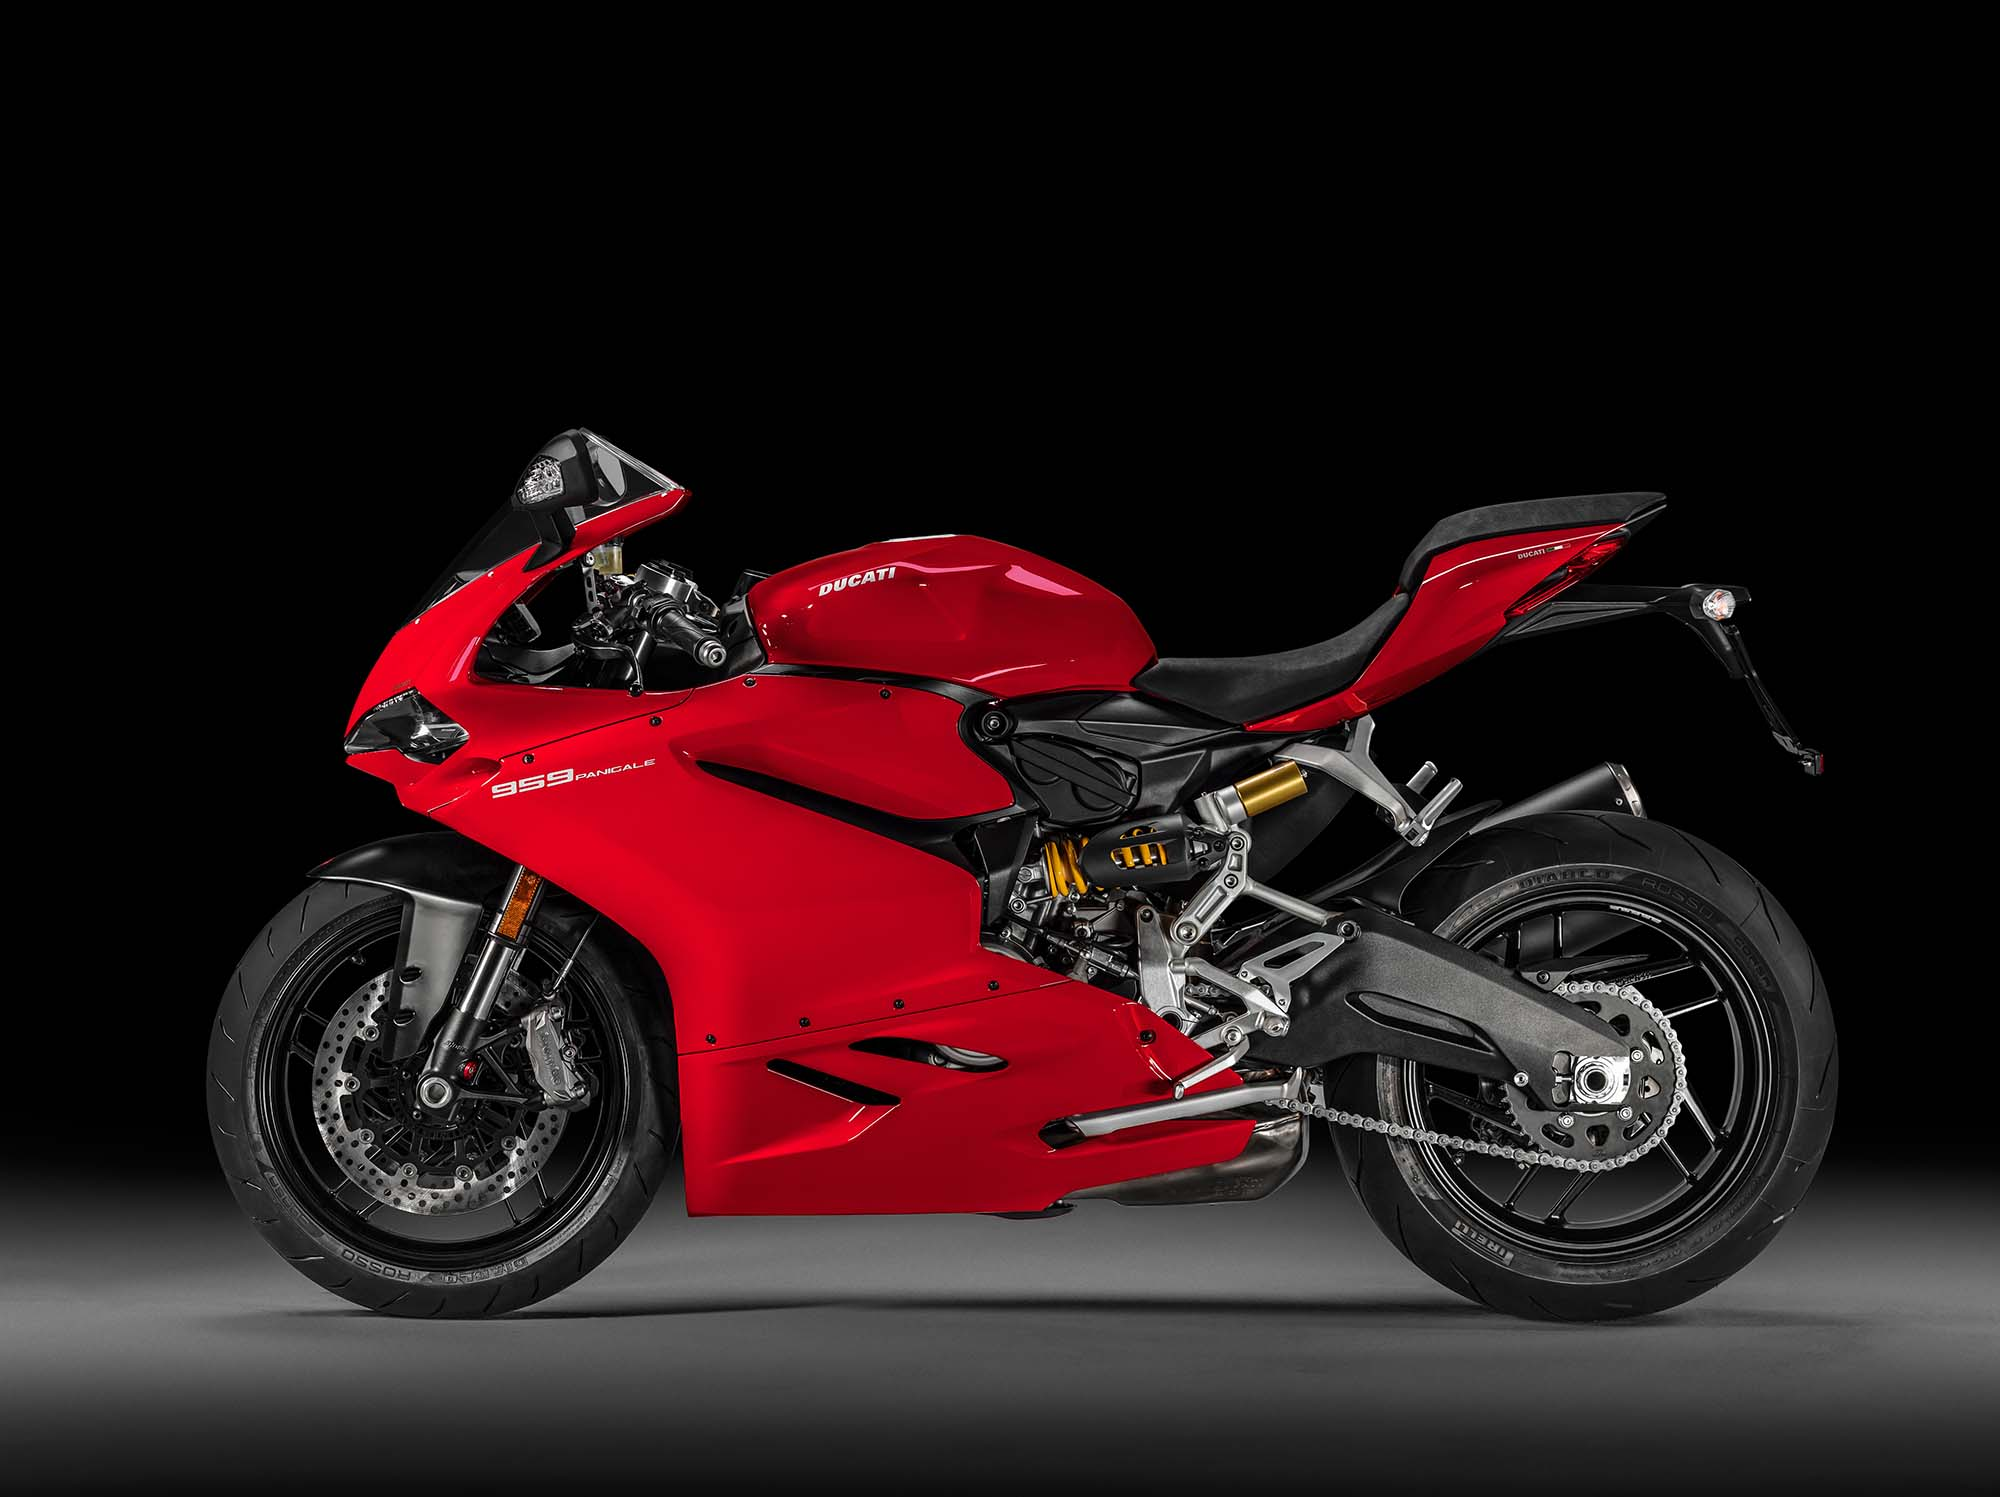 2016 Ducati 959 Panigale Comes with a Shotgun Exhaust*